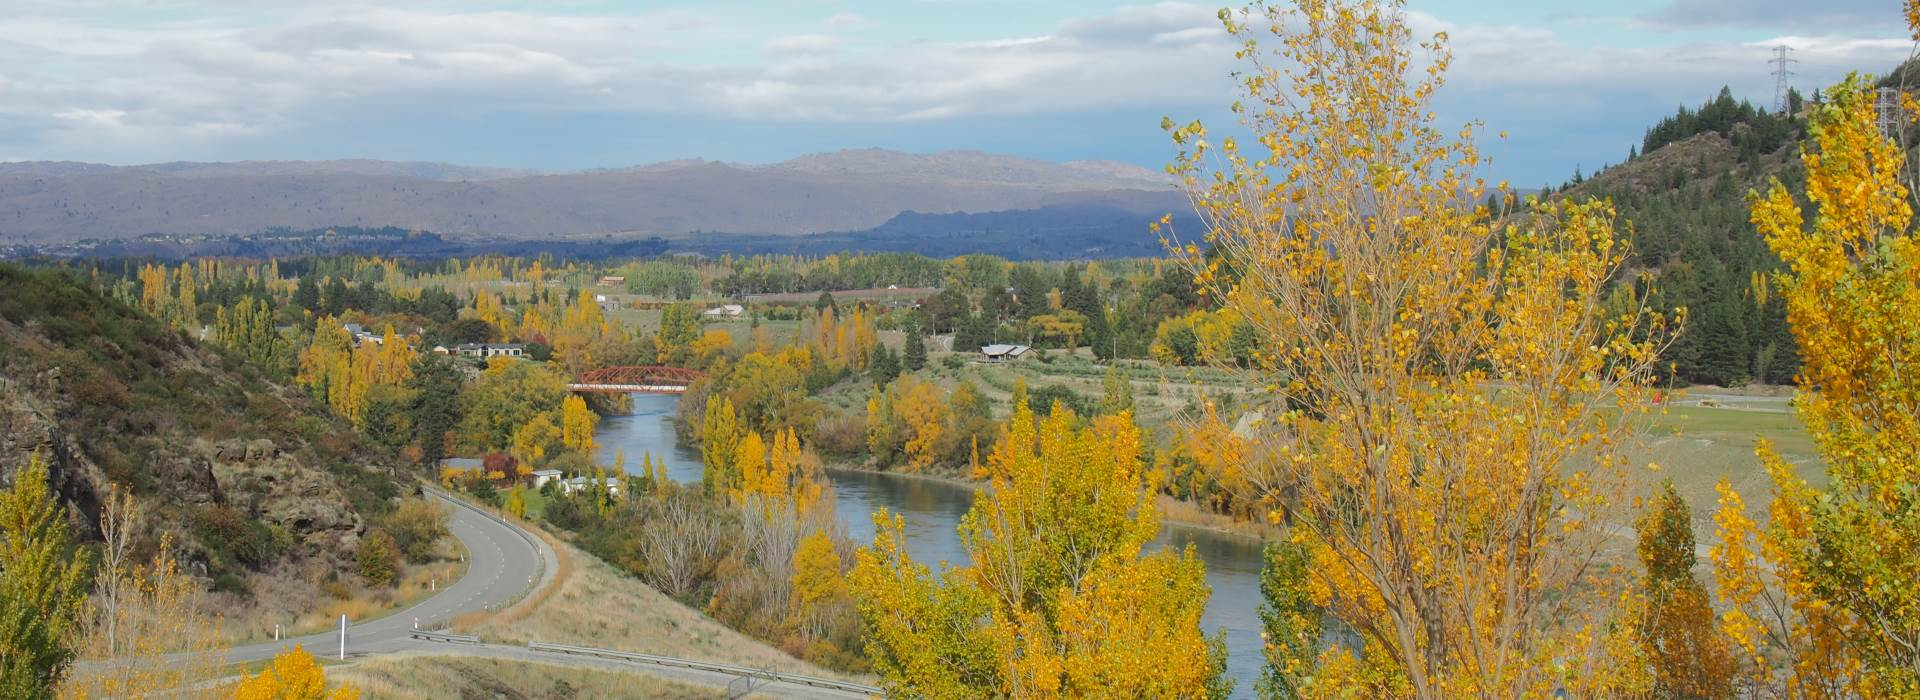 View of the Clutha River taken from the Clyde Dam.